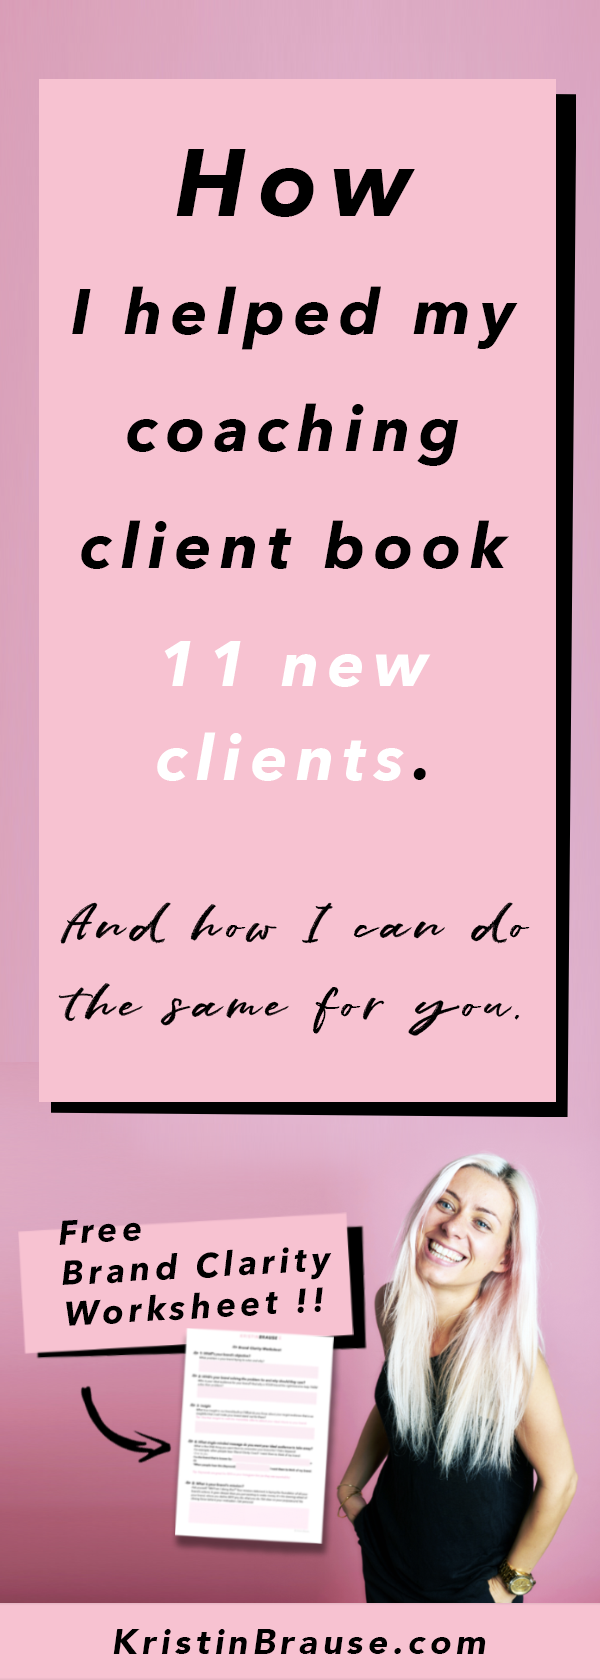 How-I-helped-my-coaching-client-book-11-new-clients-and-how-I-can-help-you-do-the-same.png